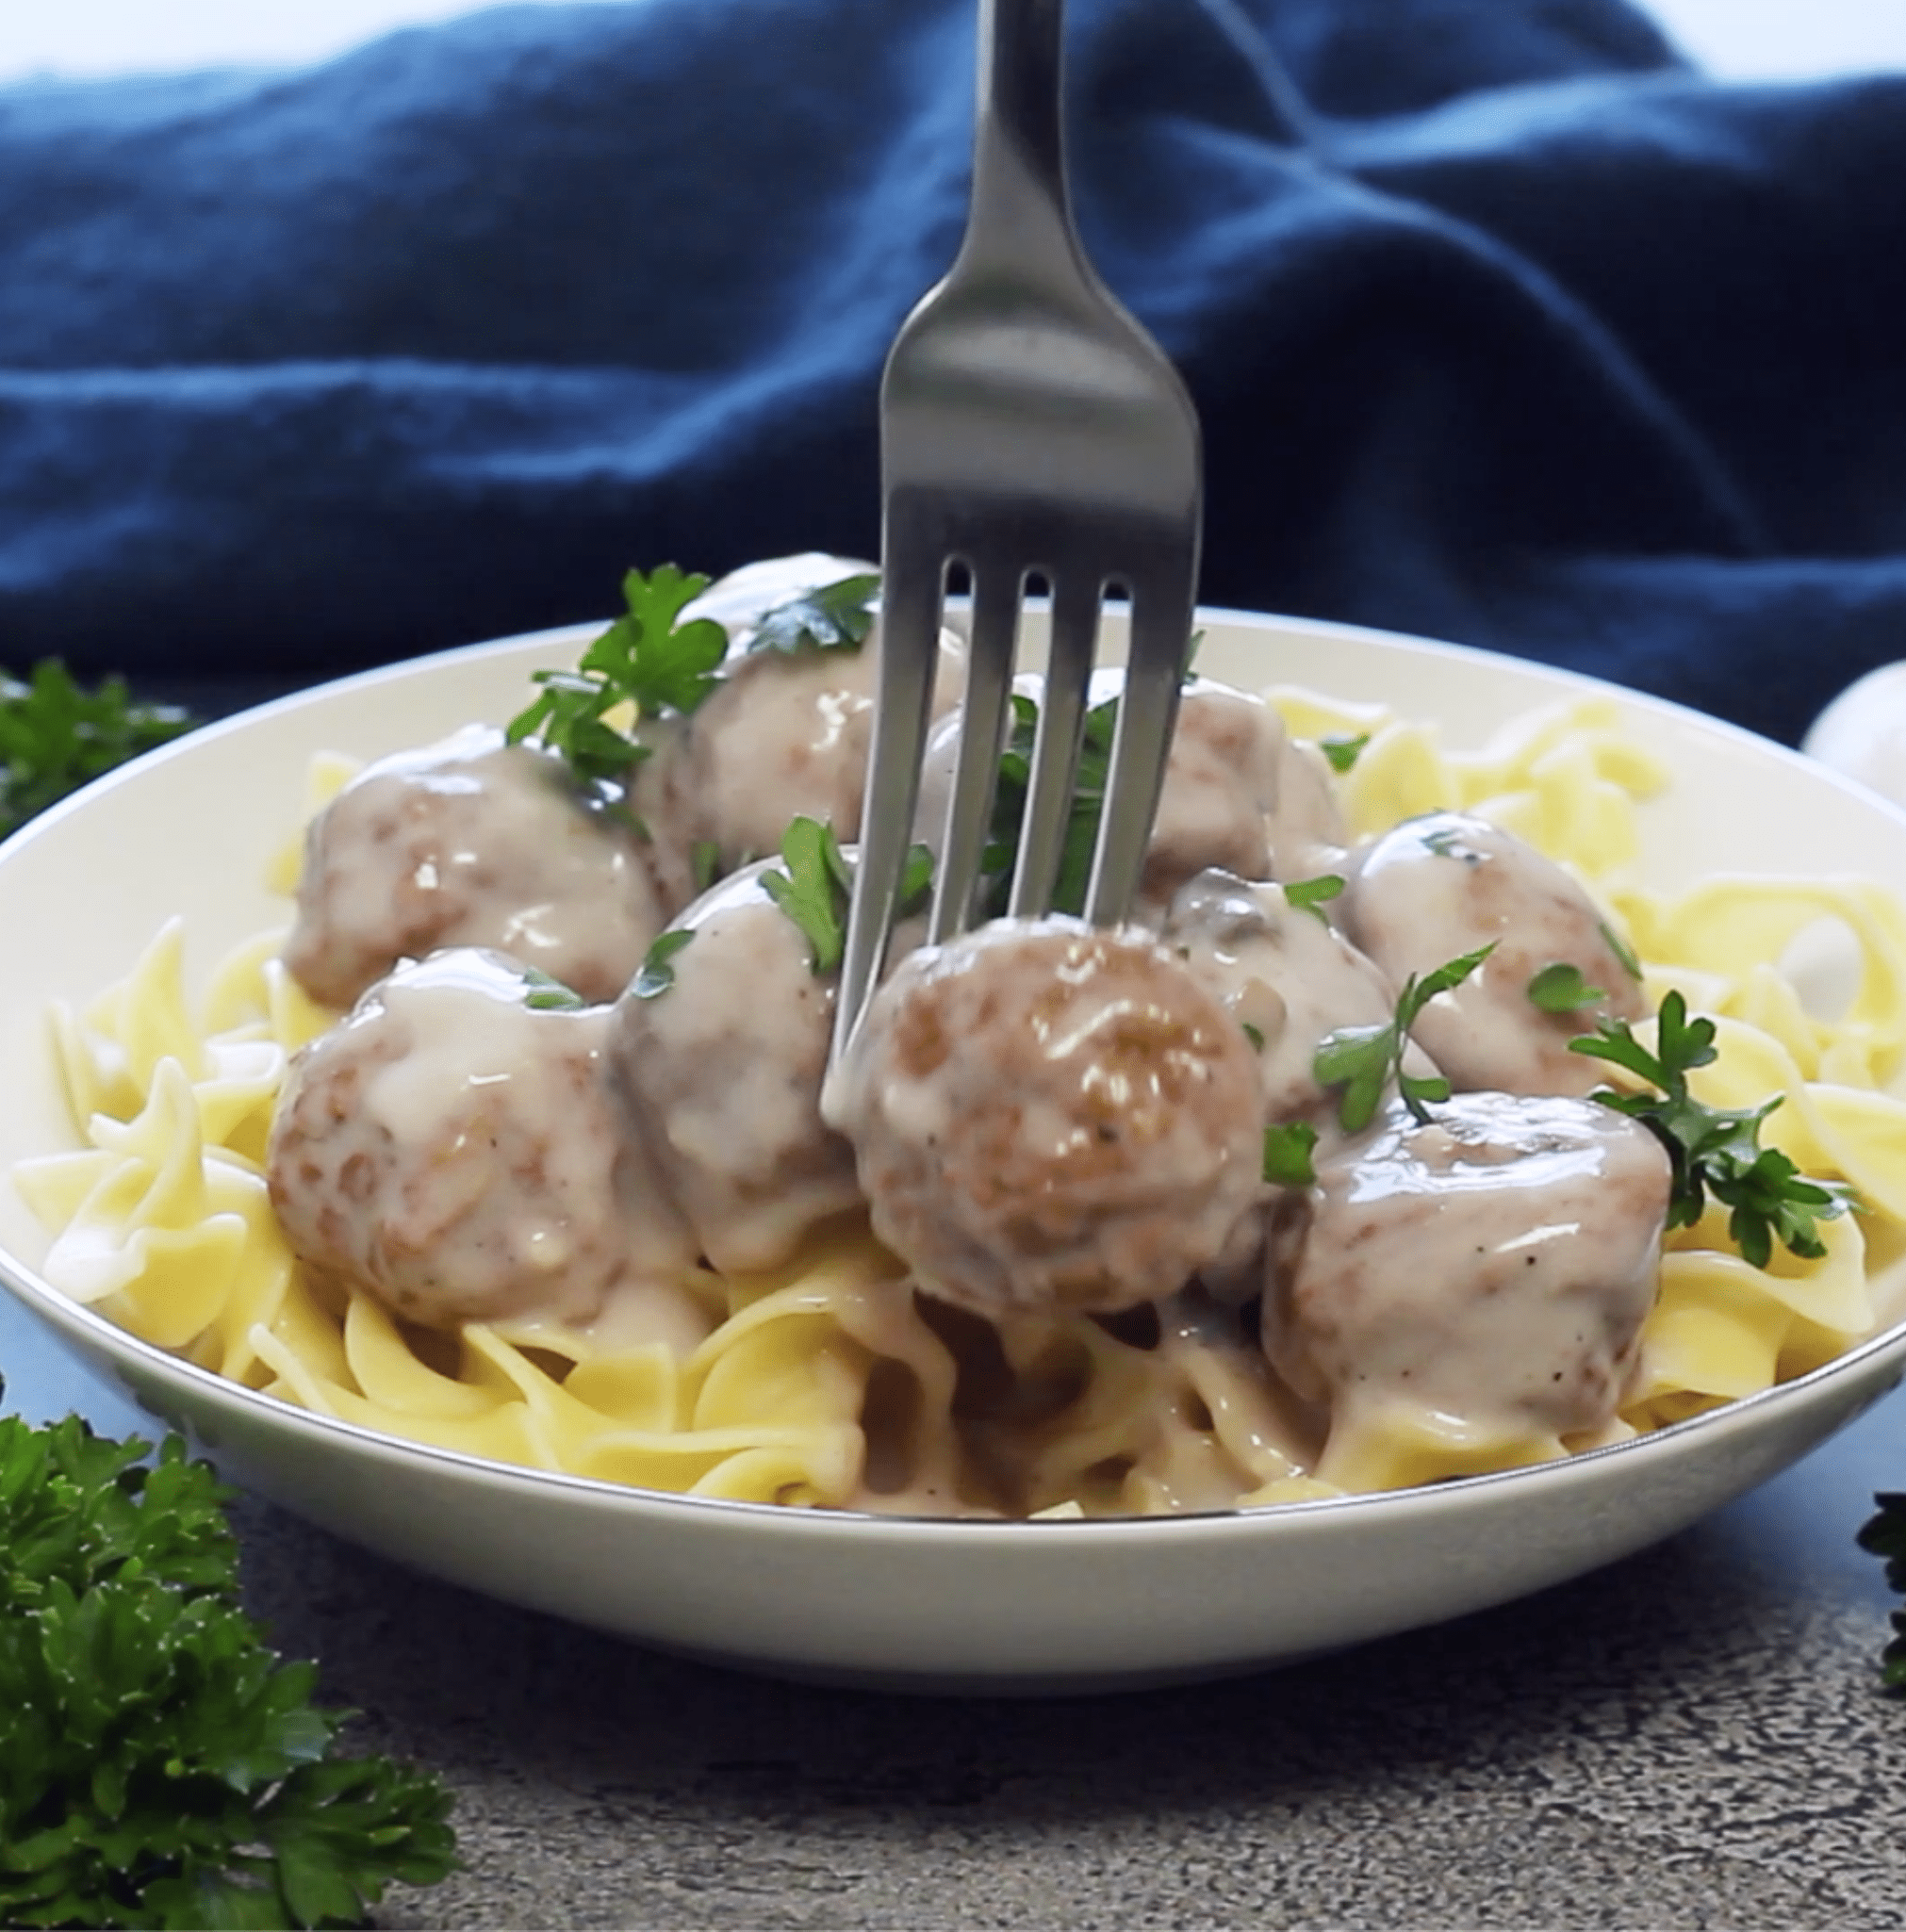 plate of creamy meatballs over egg noodles